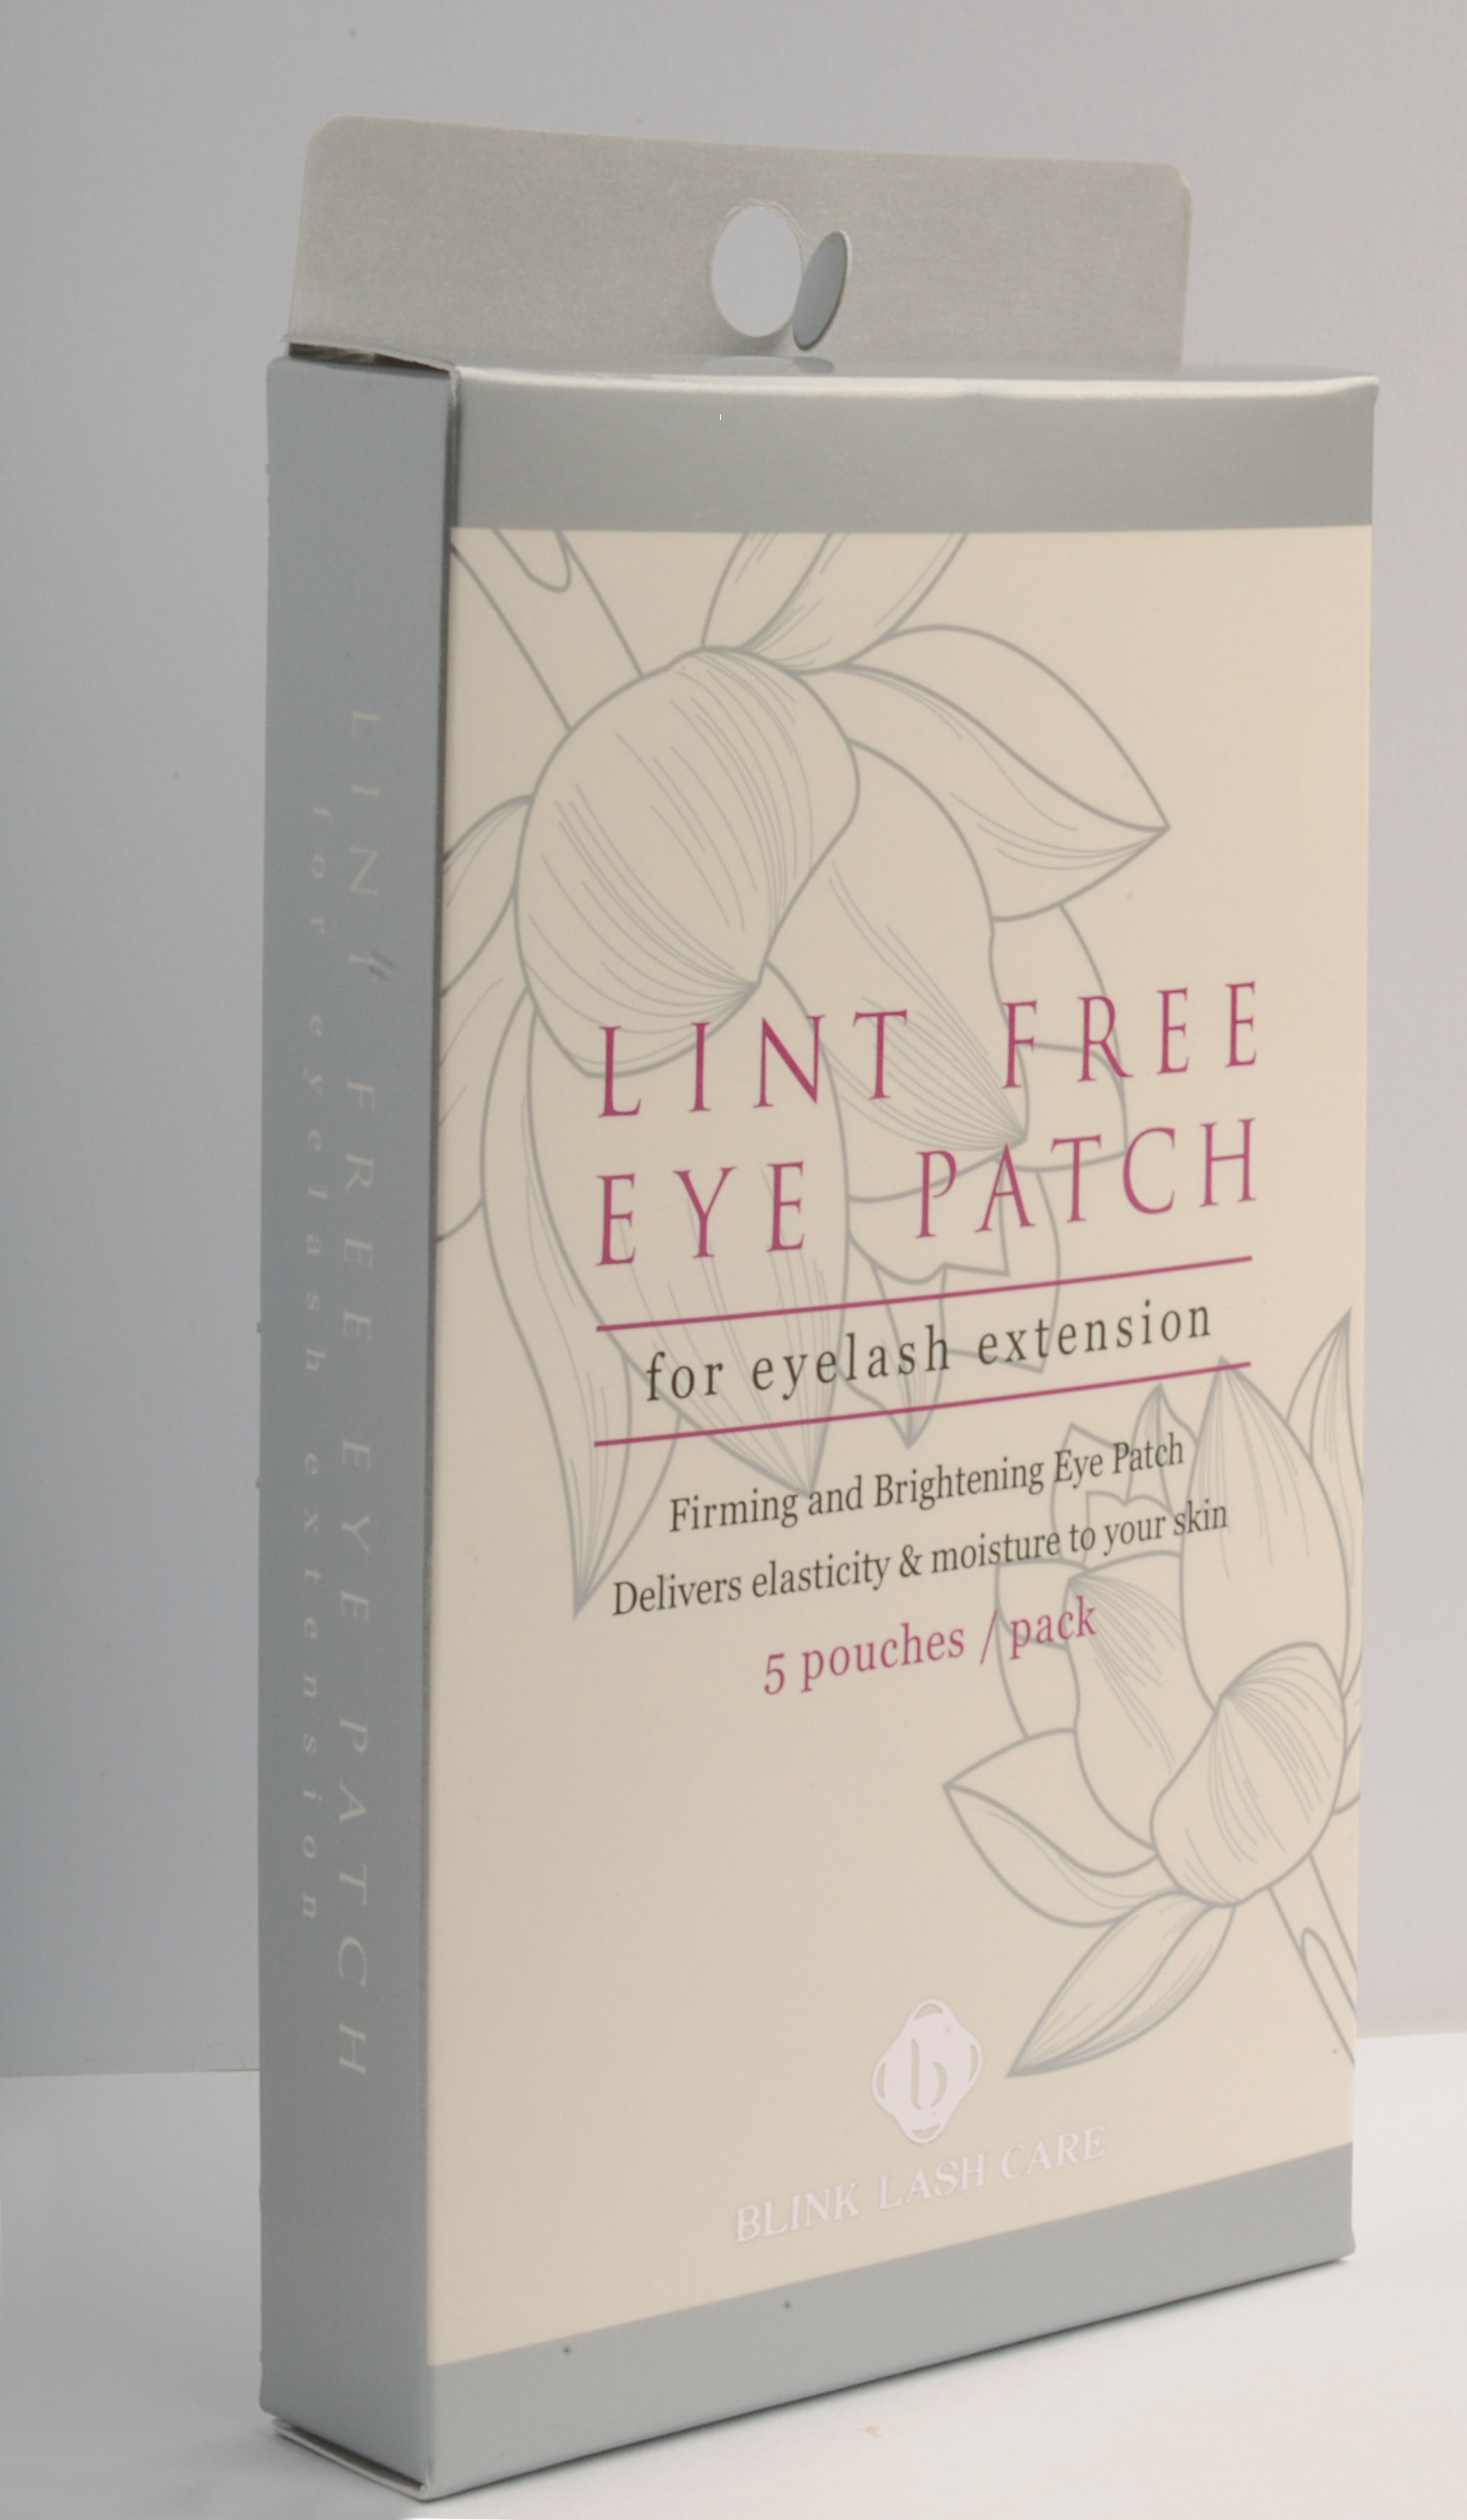 eye lash extension eye pads